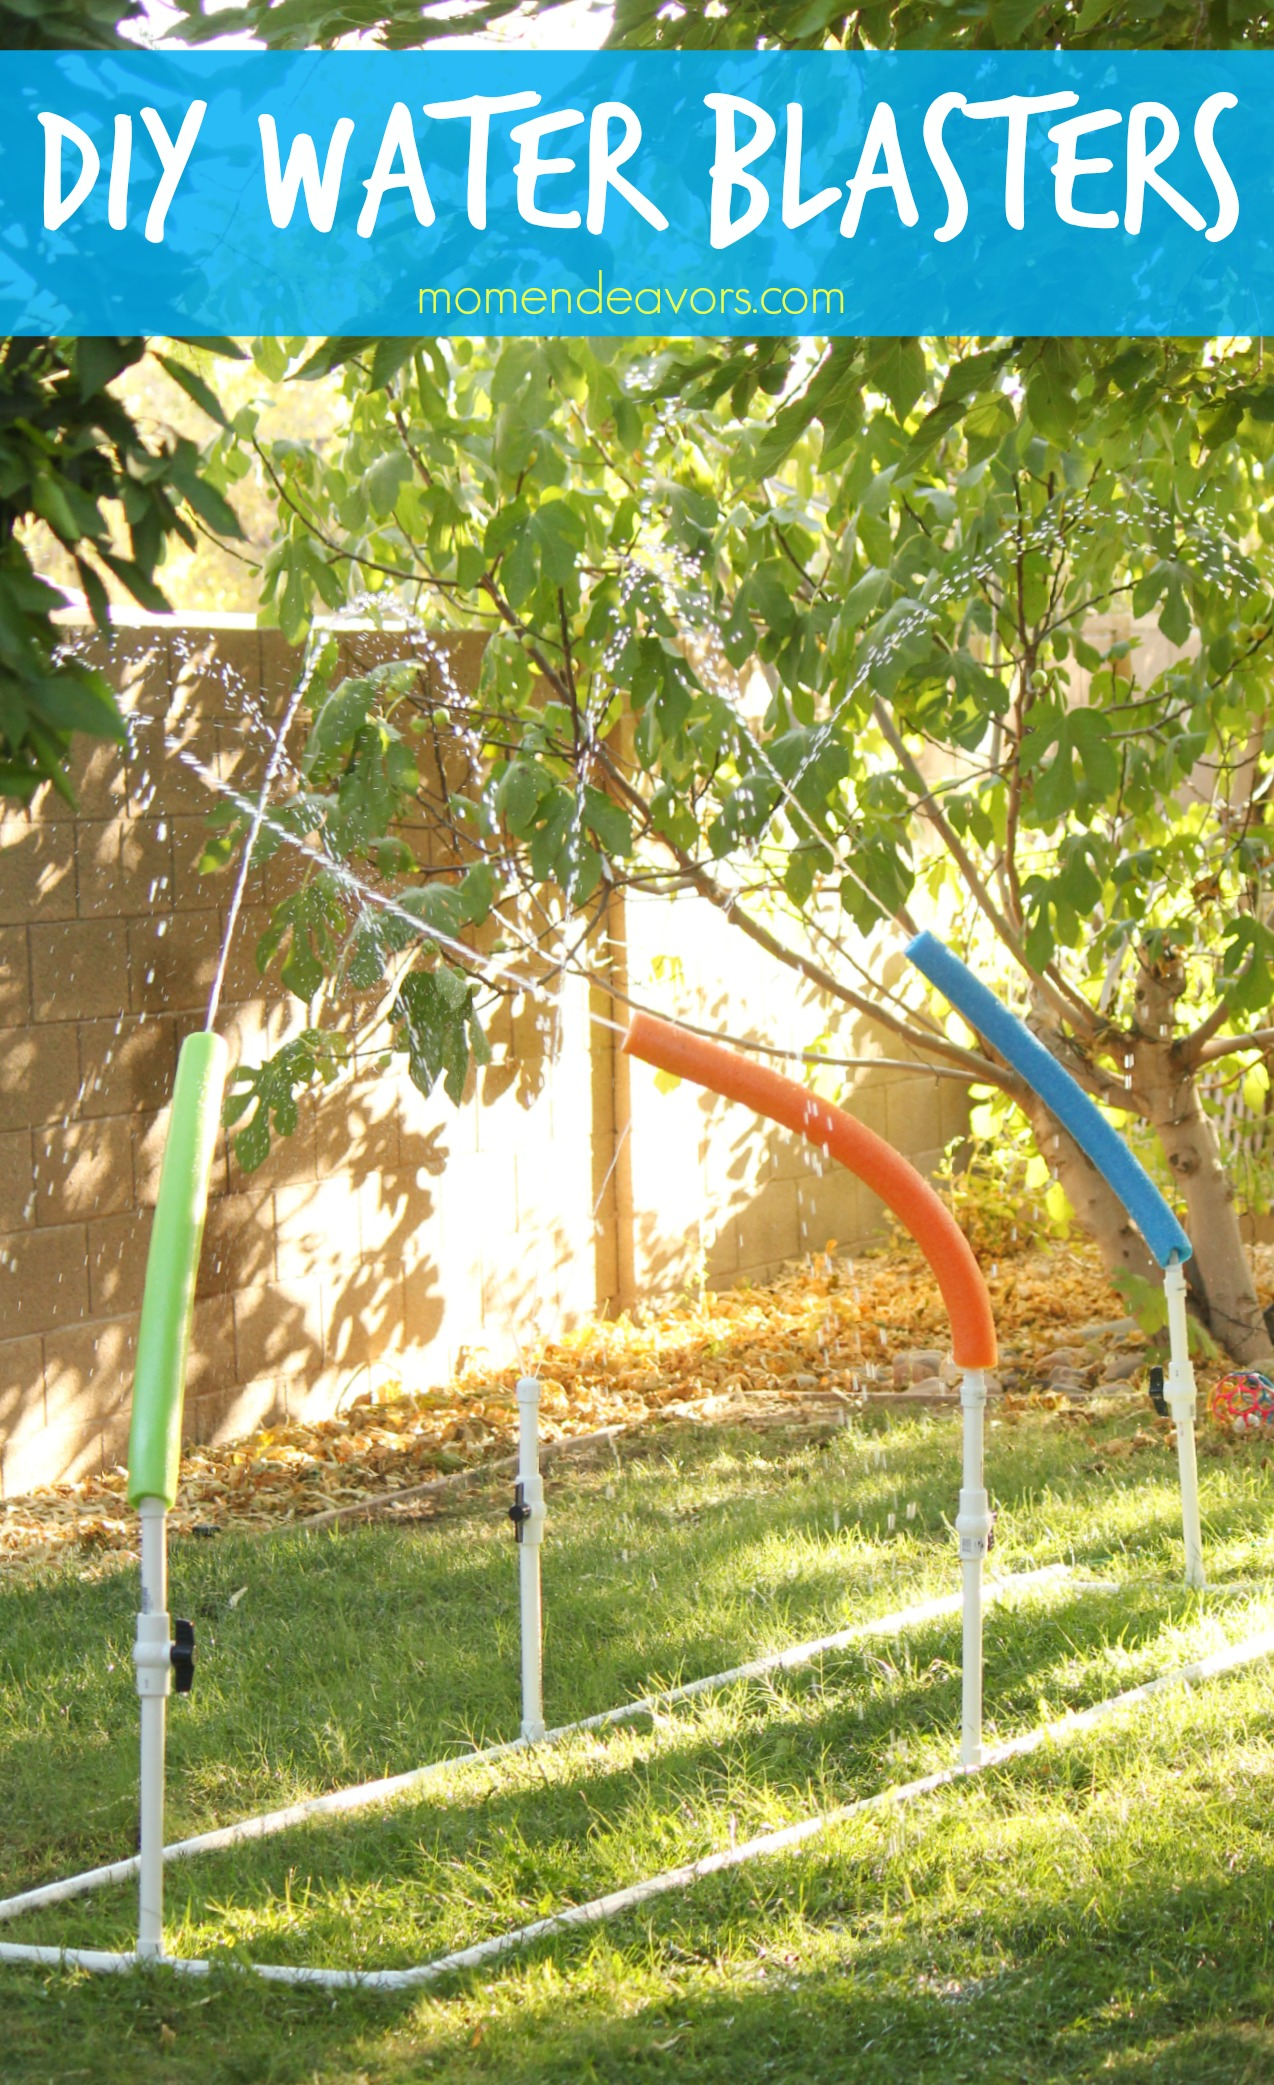 DIY Water Blasters Kiddie Sprinkler